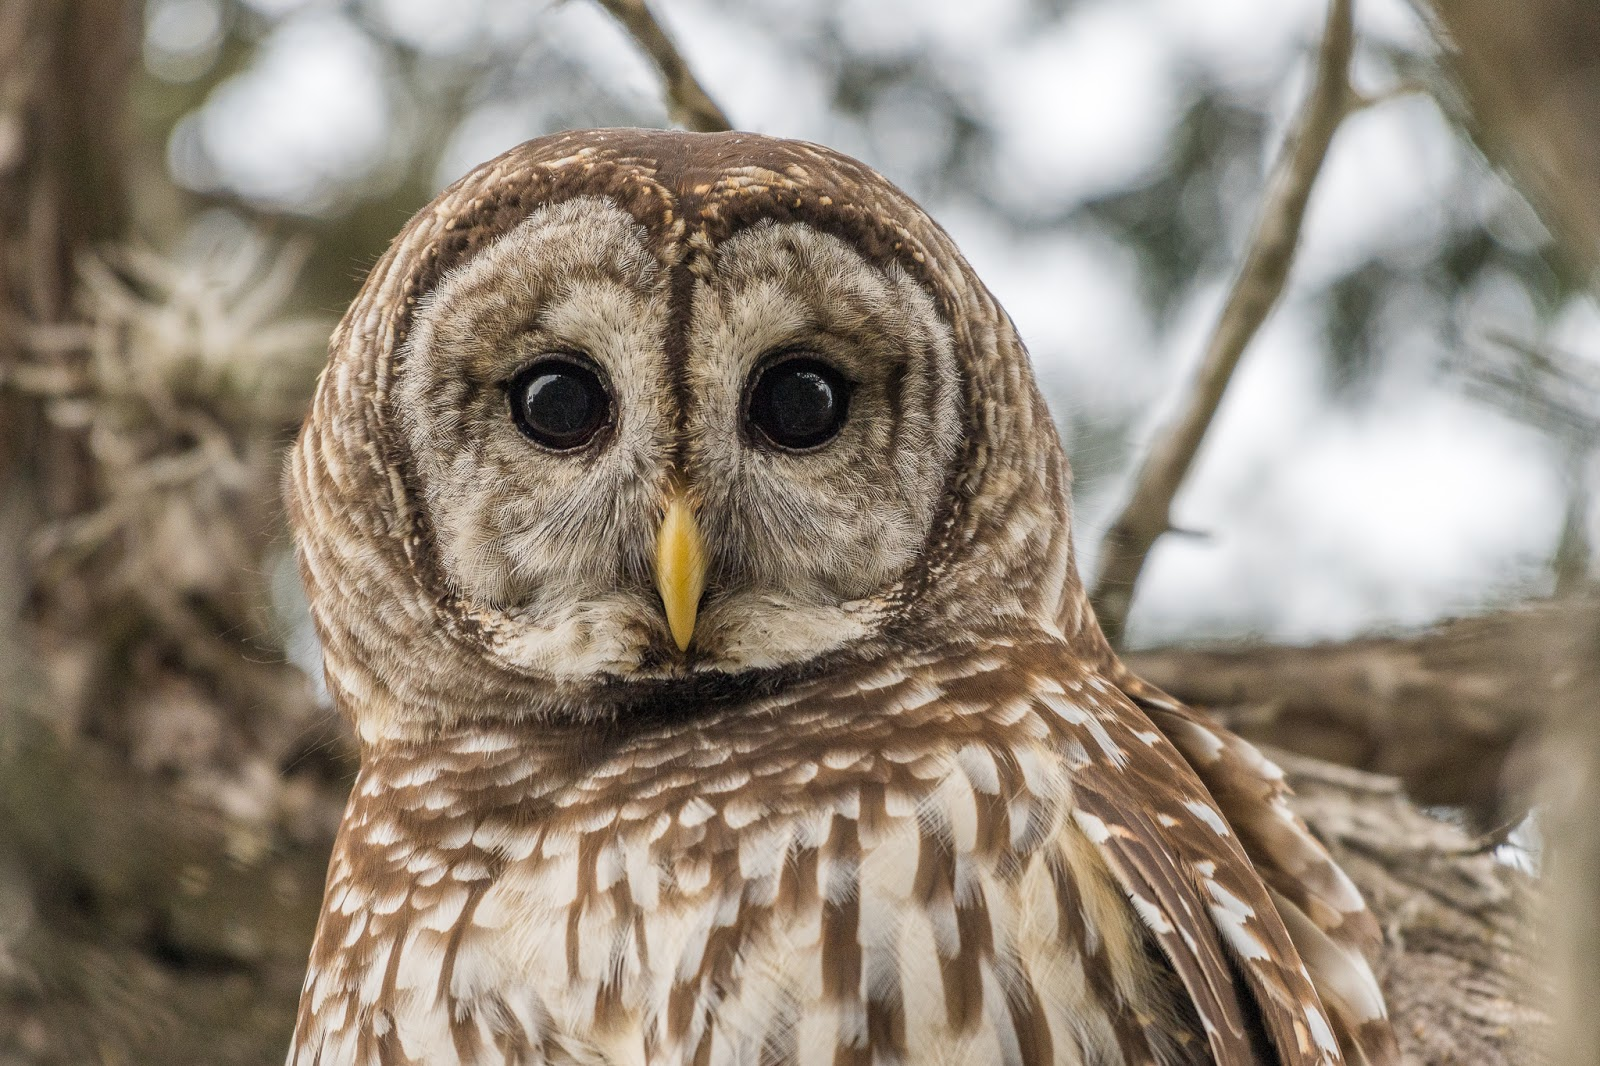 barred owl Luna, a two year old male barred owl, was struck by a car in new hampshire photo by bharath manu akkraraveetil.